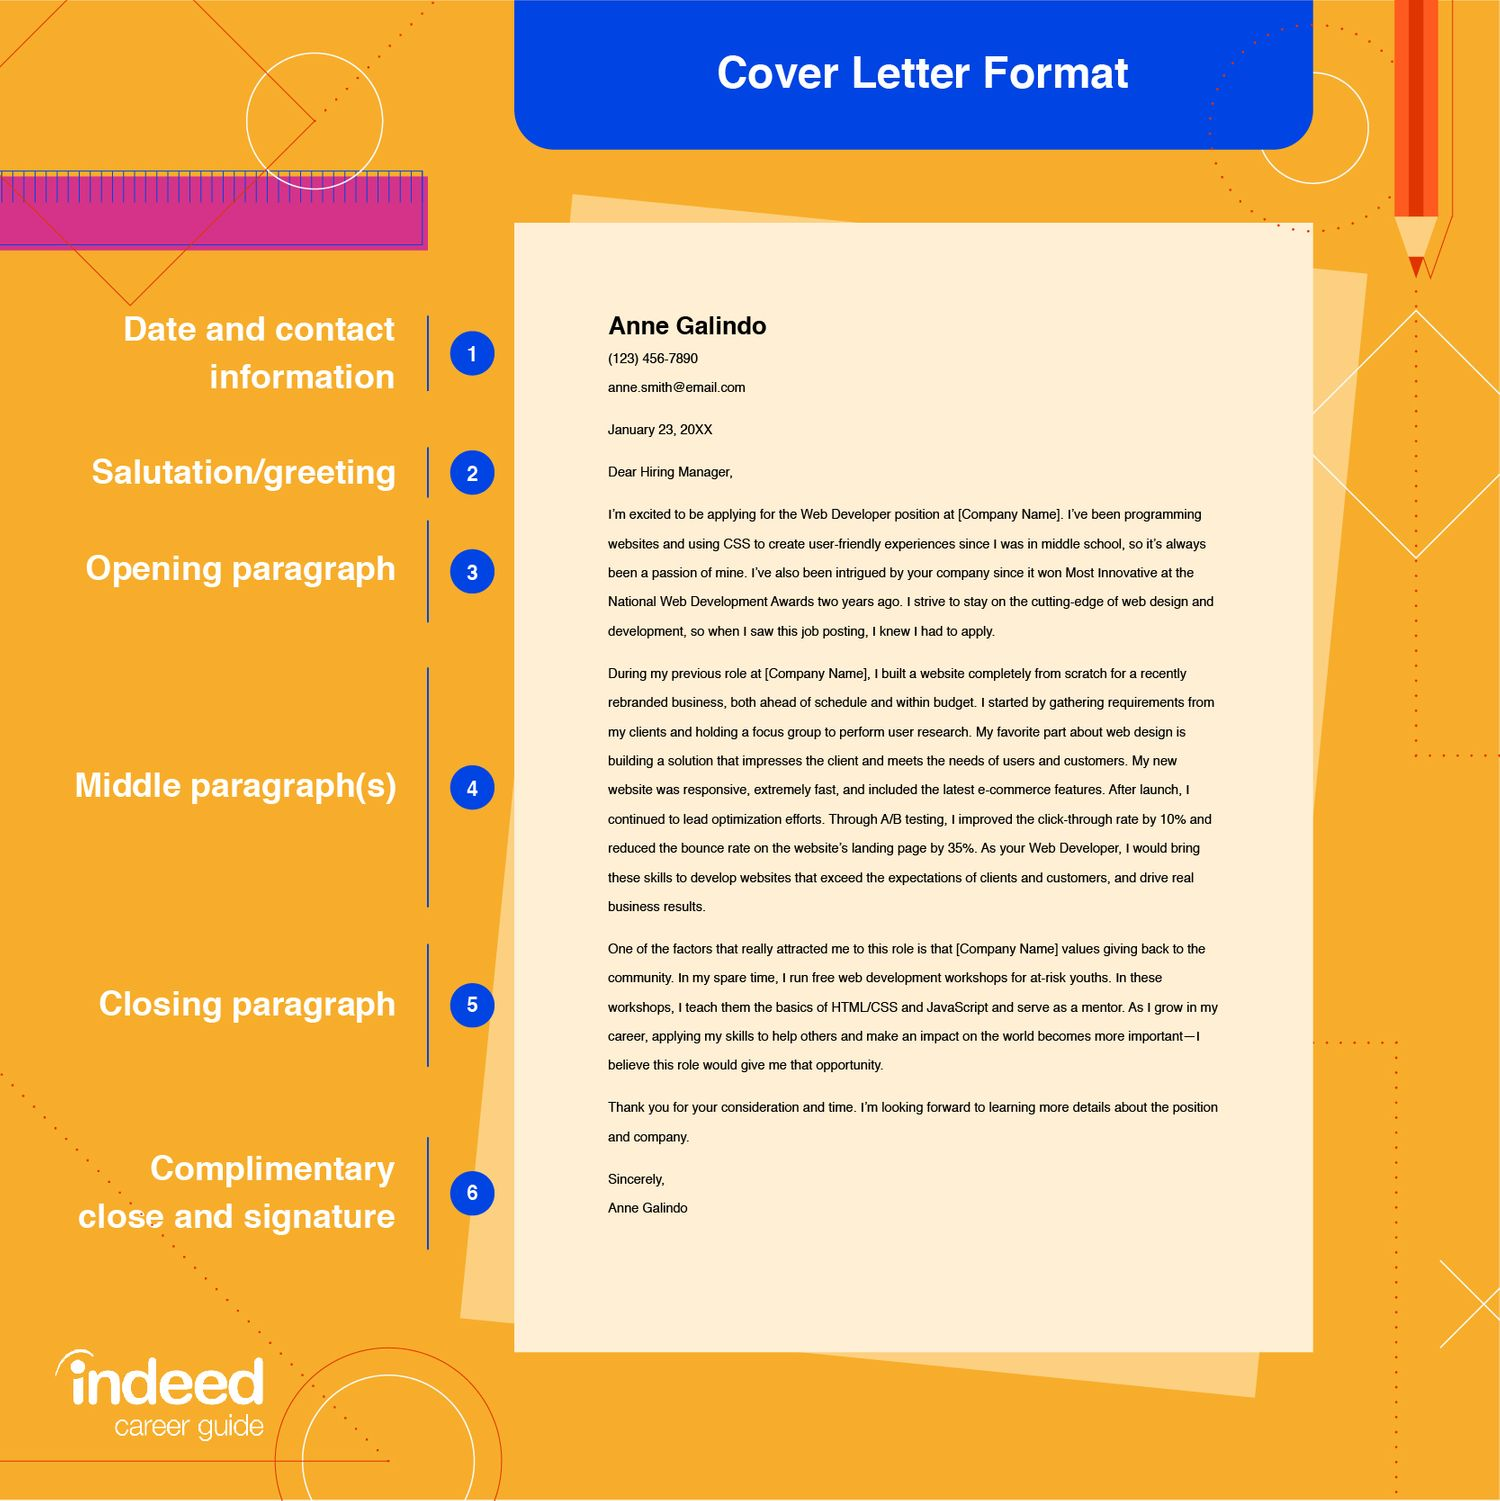 Formal Cover Letter Sample from d4y70tum9c2ak.cloudfront.net